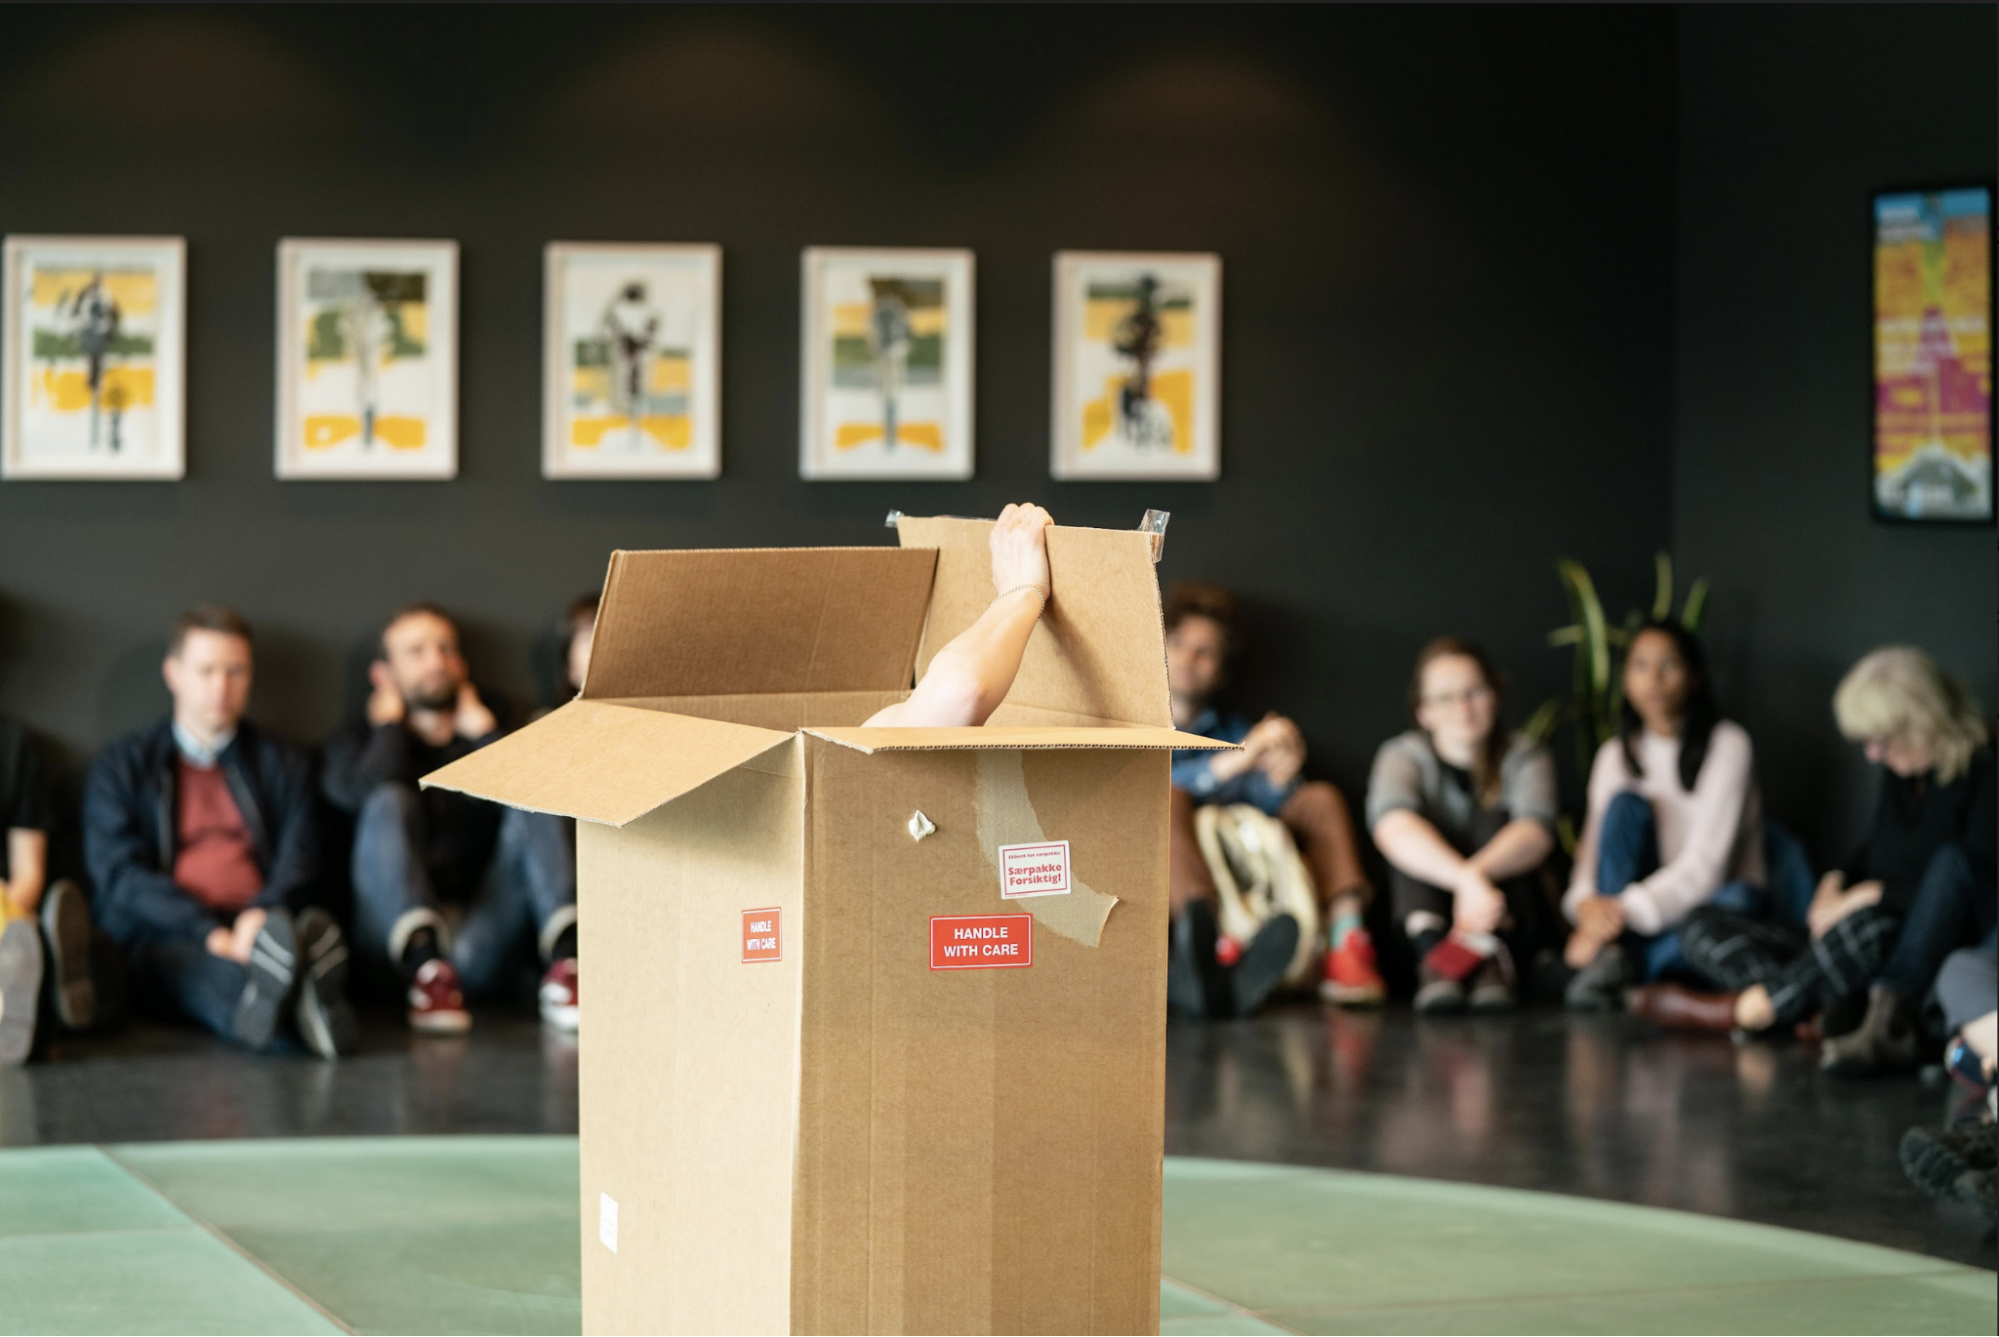 There is a large brown cardboard box in the foreground with the top open and a light skinned human arm extending out of it, opening one of the flaps. The background is out of focus and shows an audience of people sitting on the floor of a gray room with art on the walls.